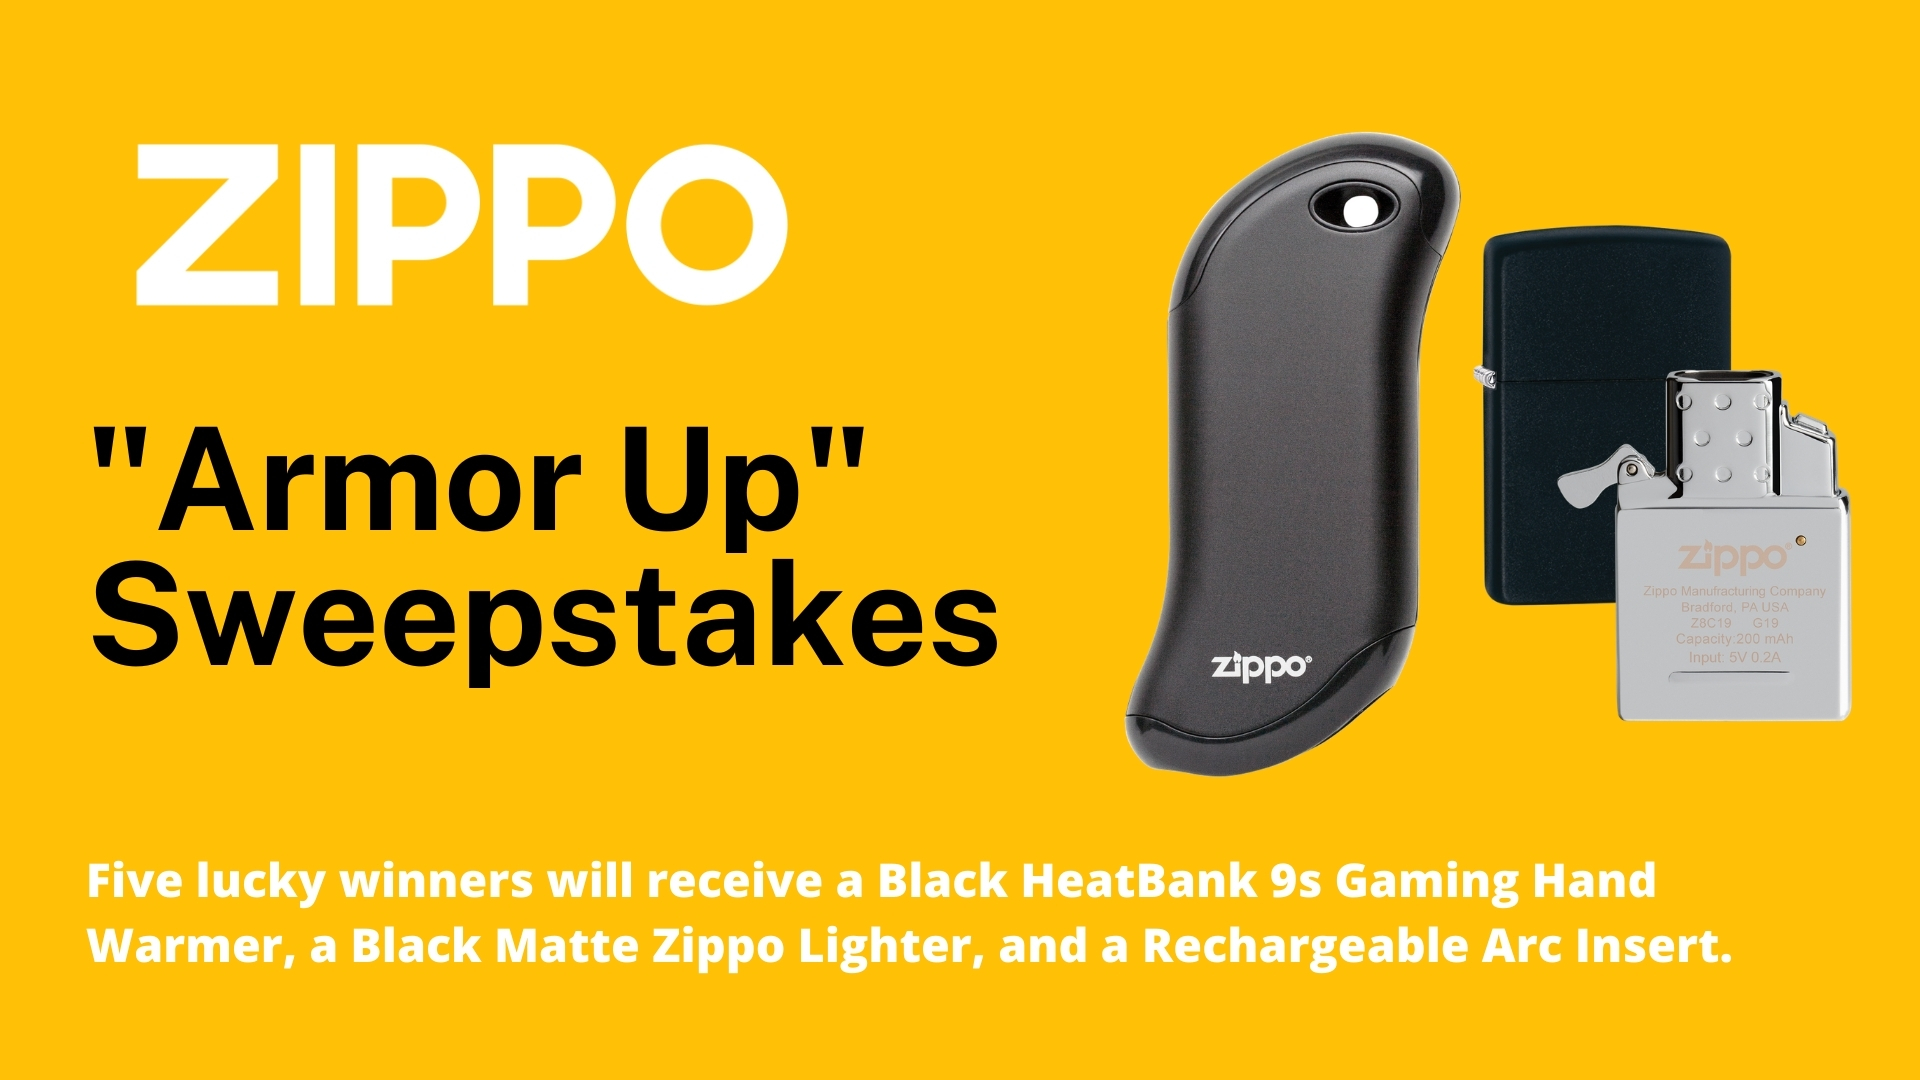 Enter for a Chance to Win Zippo's Armor Up Sweepstakes. Five lucky winners will receive a Black HeatBank 9s Gaming Hand Warmer, a Black Matte Zippo Ligher, and an Arc Lighter Insert.